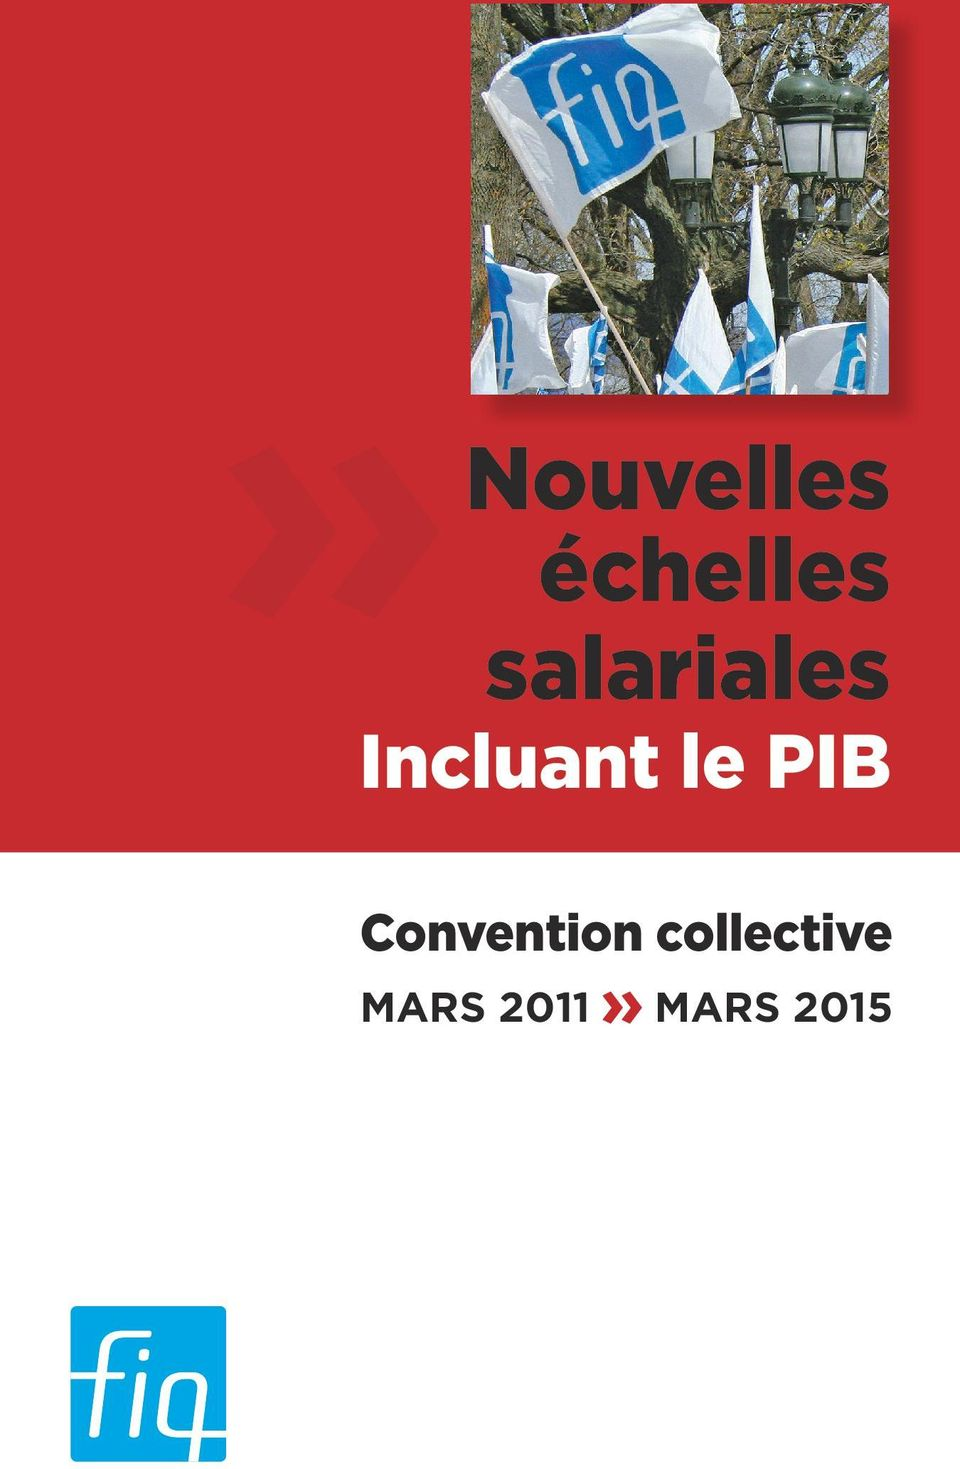 le PIB Convention